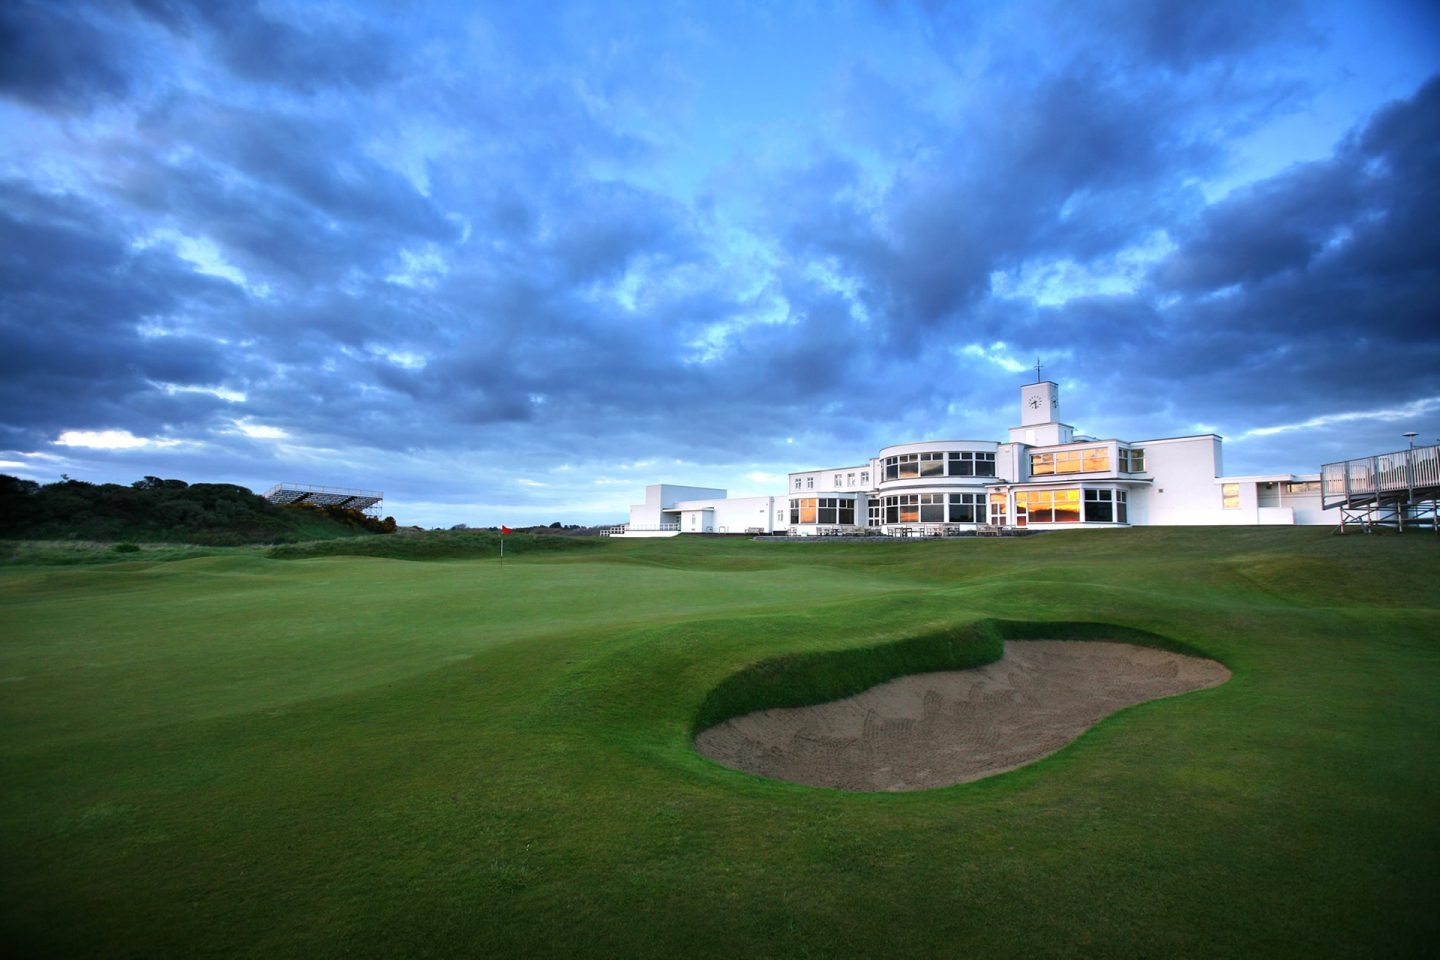 El British Open se juega en el Royal Birkdale Club.